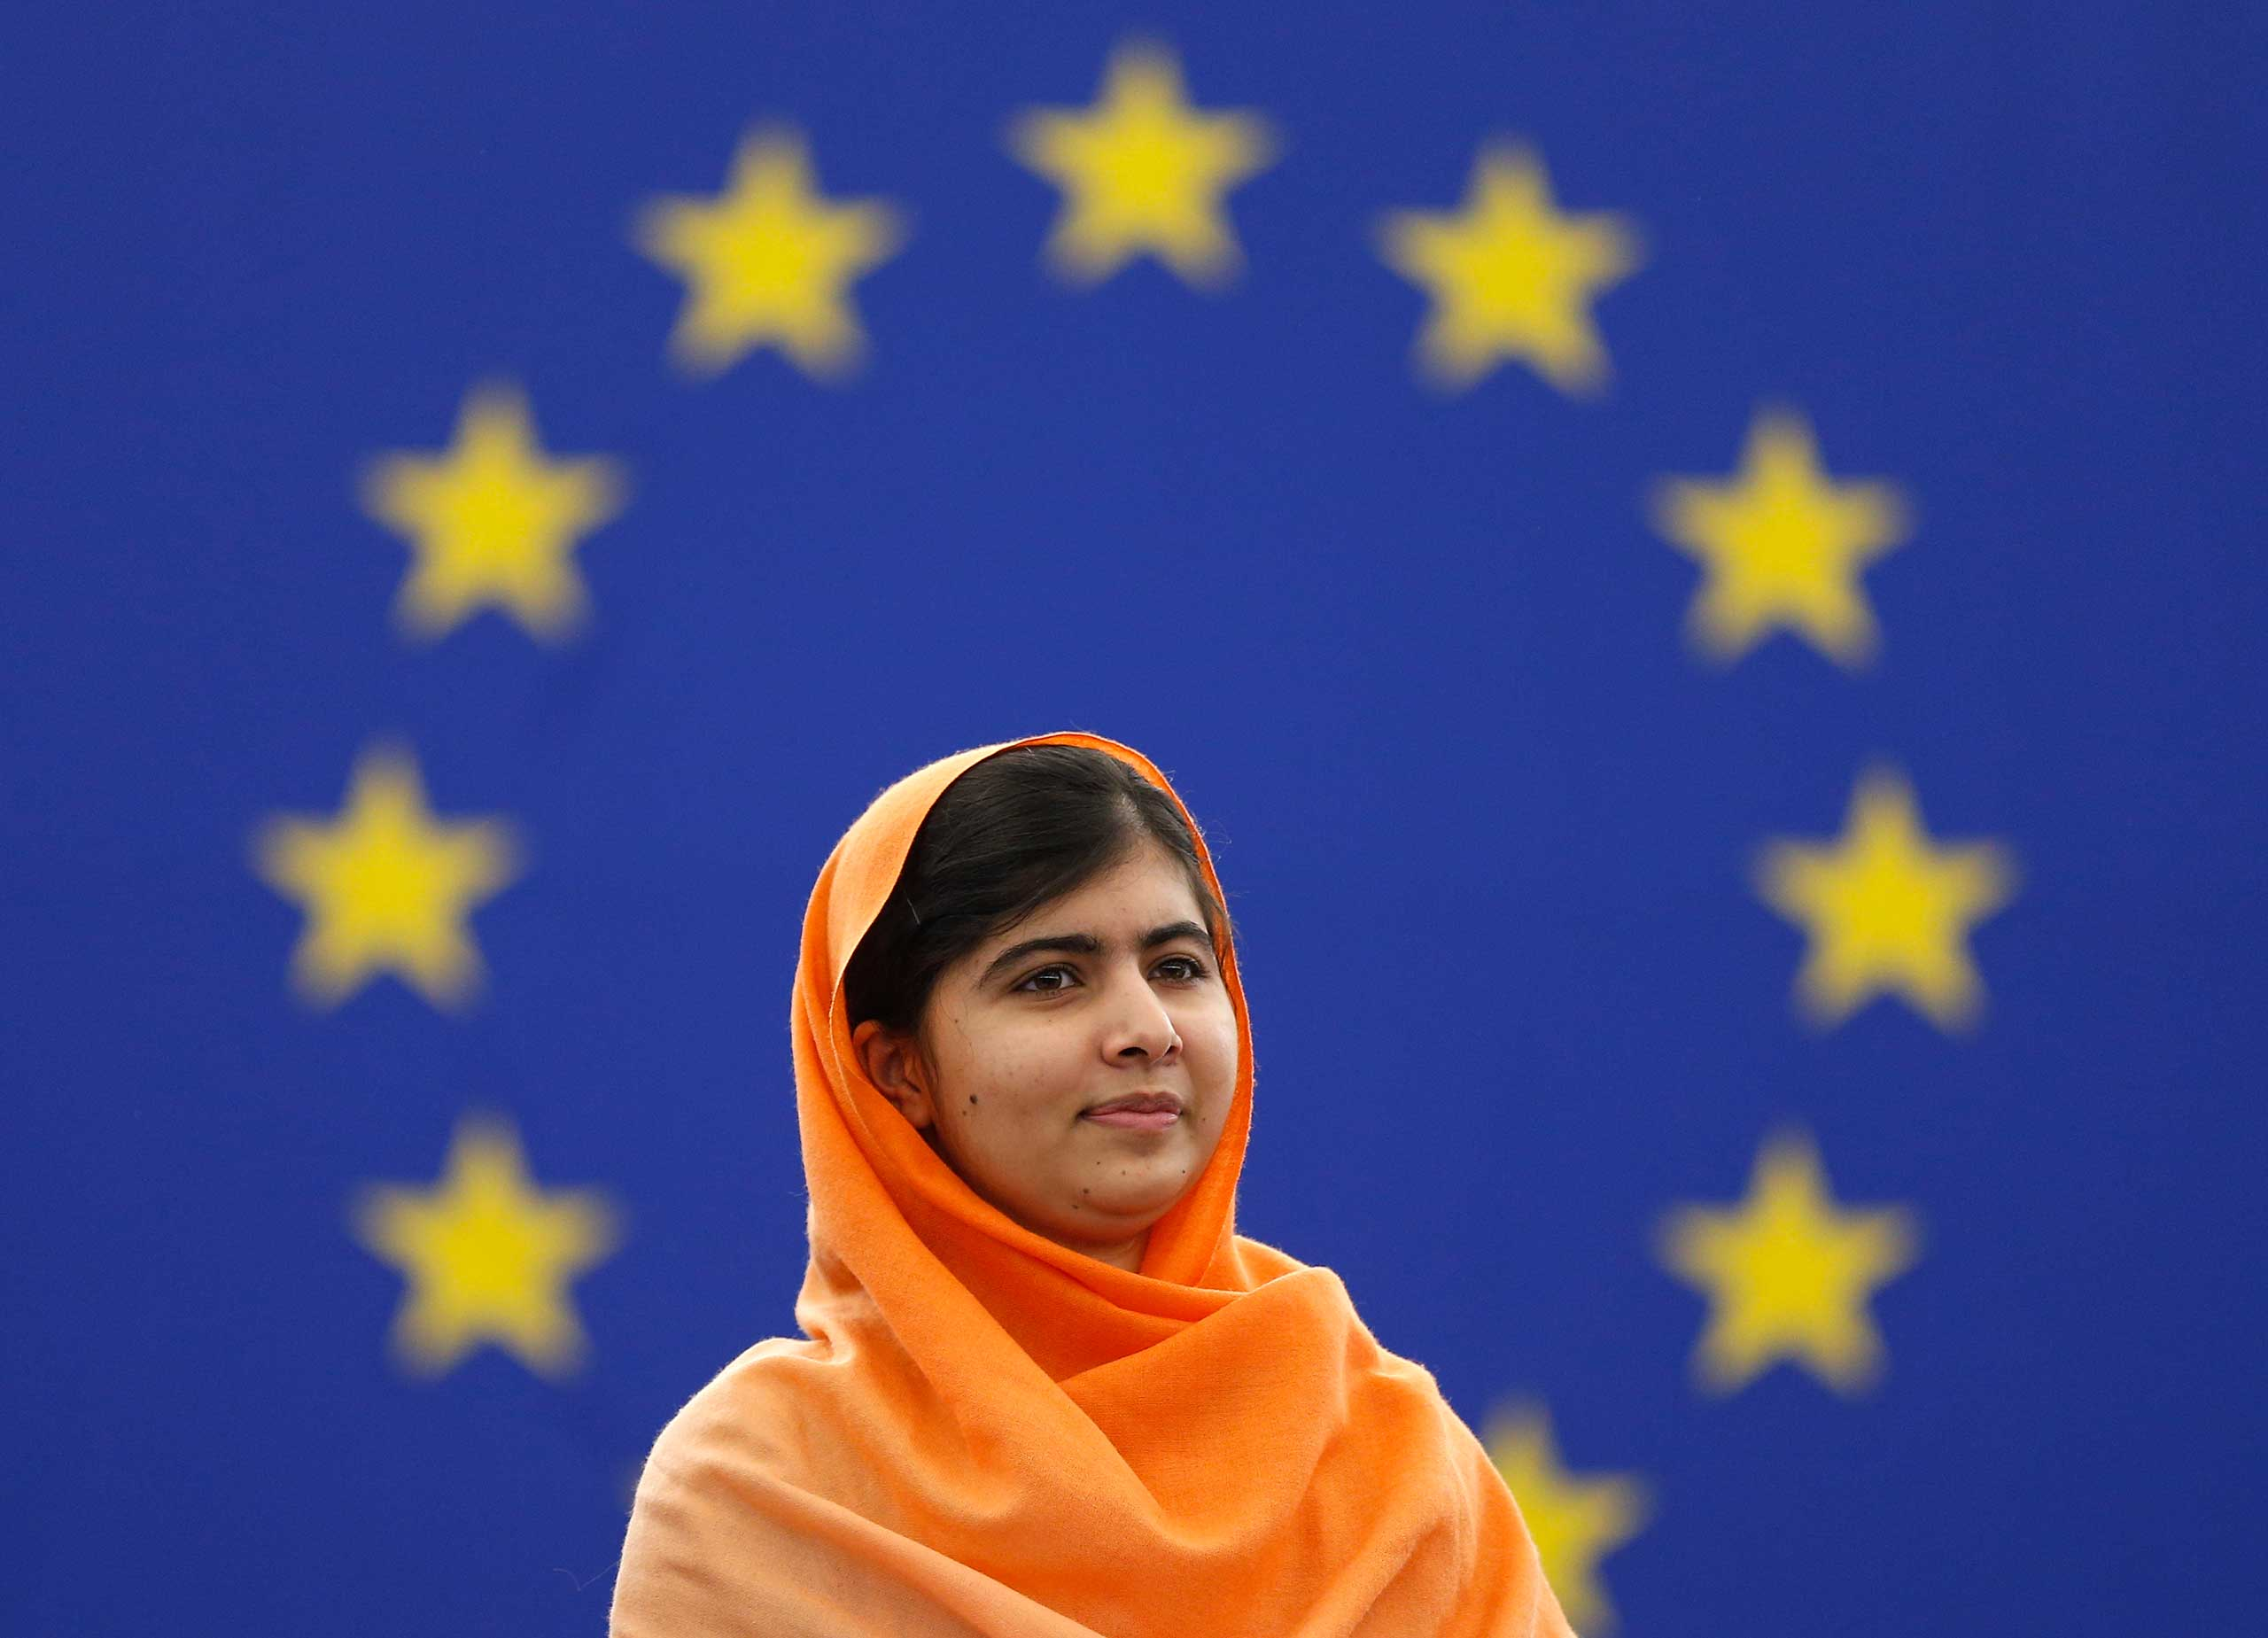 Malala Yousafzai attends an award ceremony to receive her 2013 Sakharov Prize at the European Parliament in Strasbourg, France on Nov. 20, 2013.